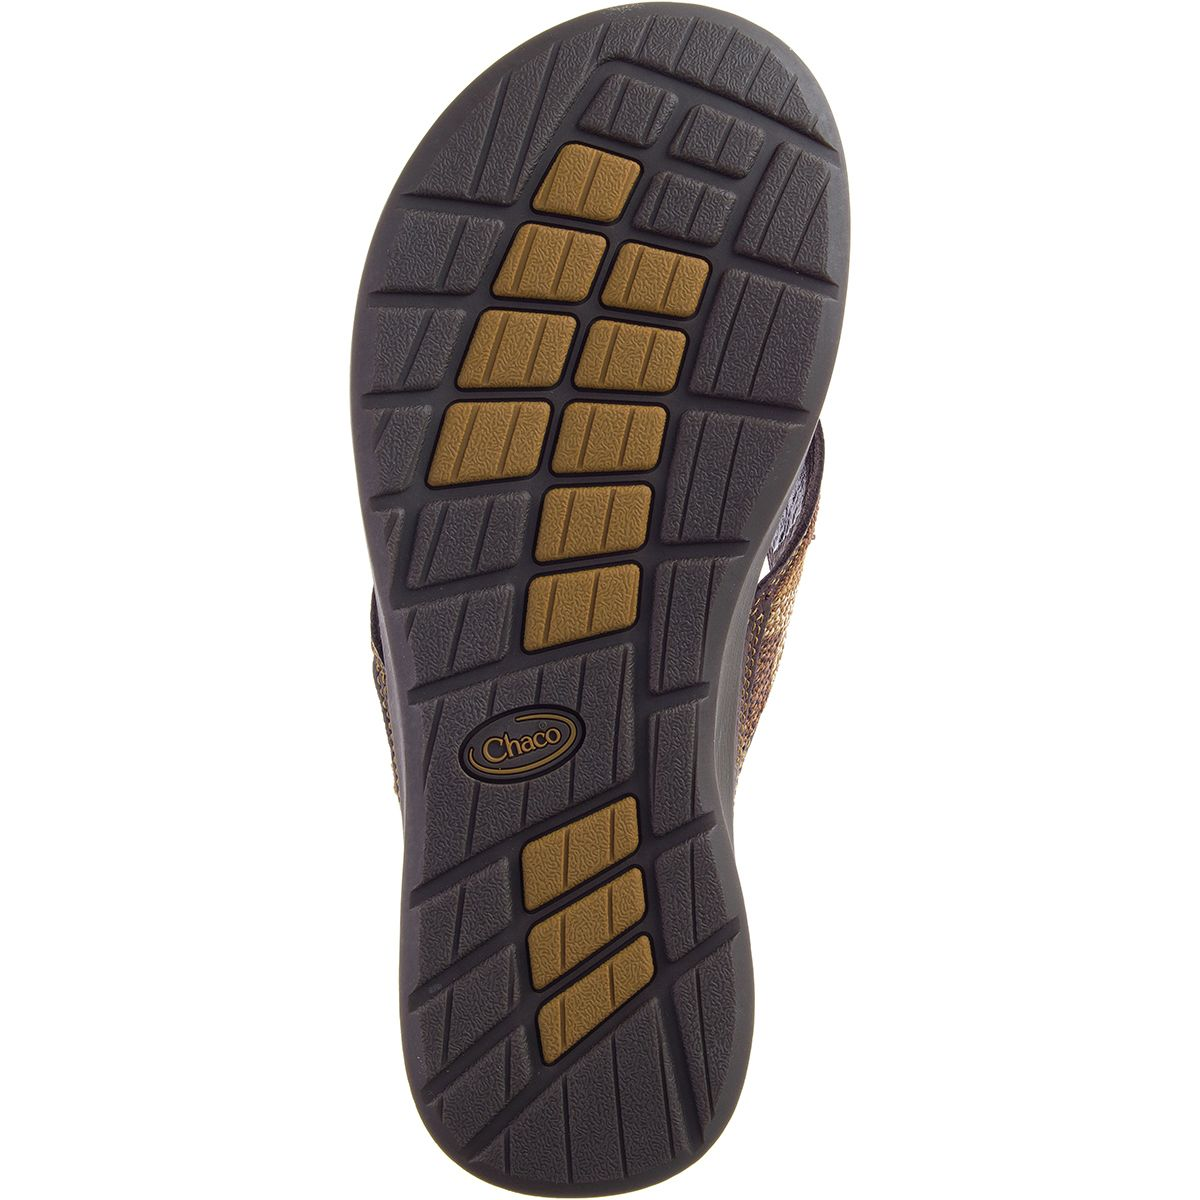 Chaco Men/'s Marshall Flip-Flop 10 Bind Java